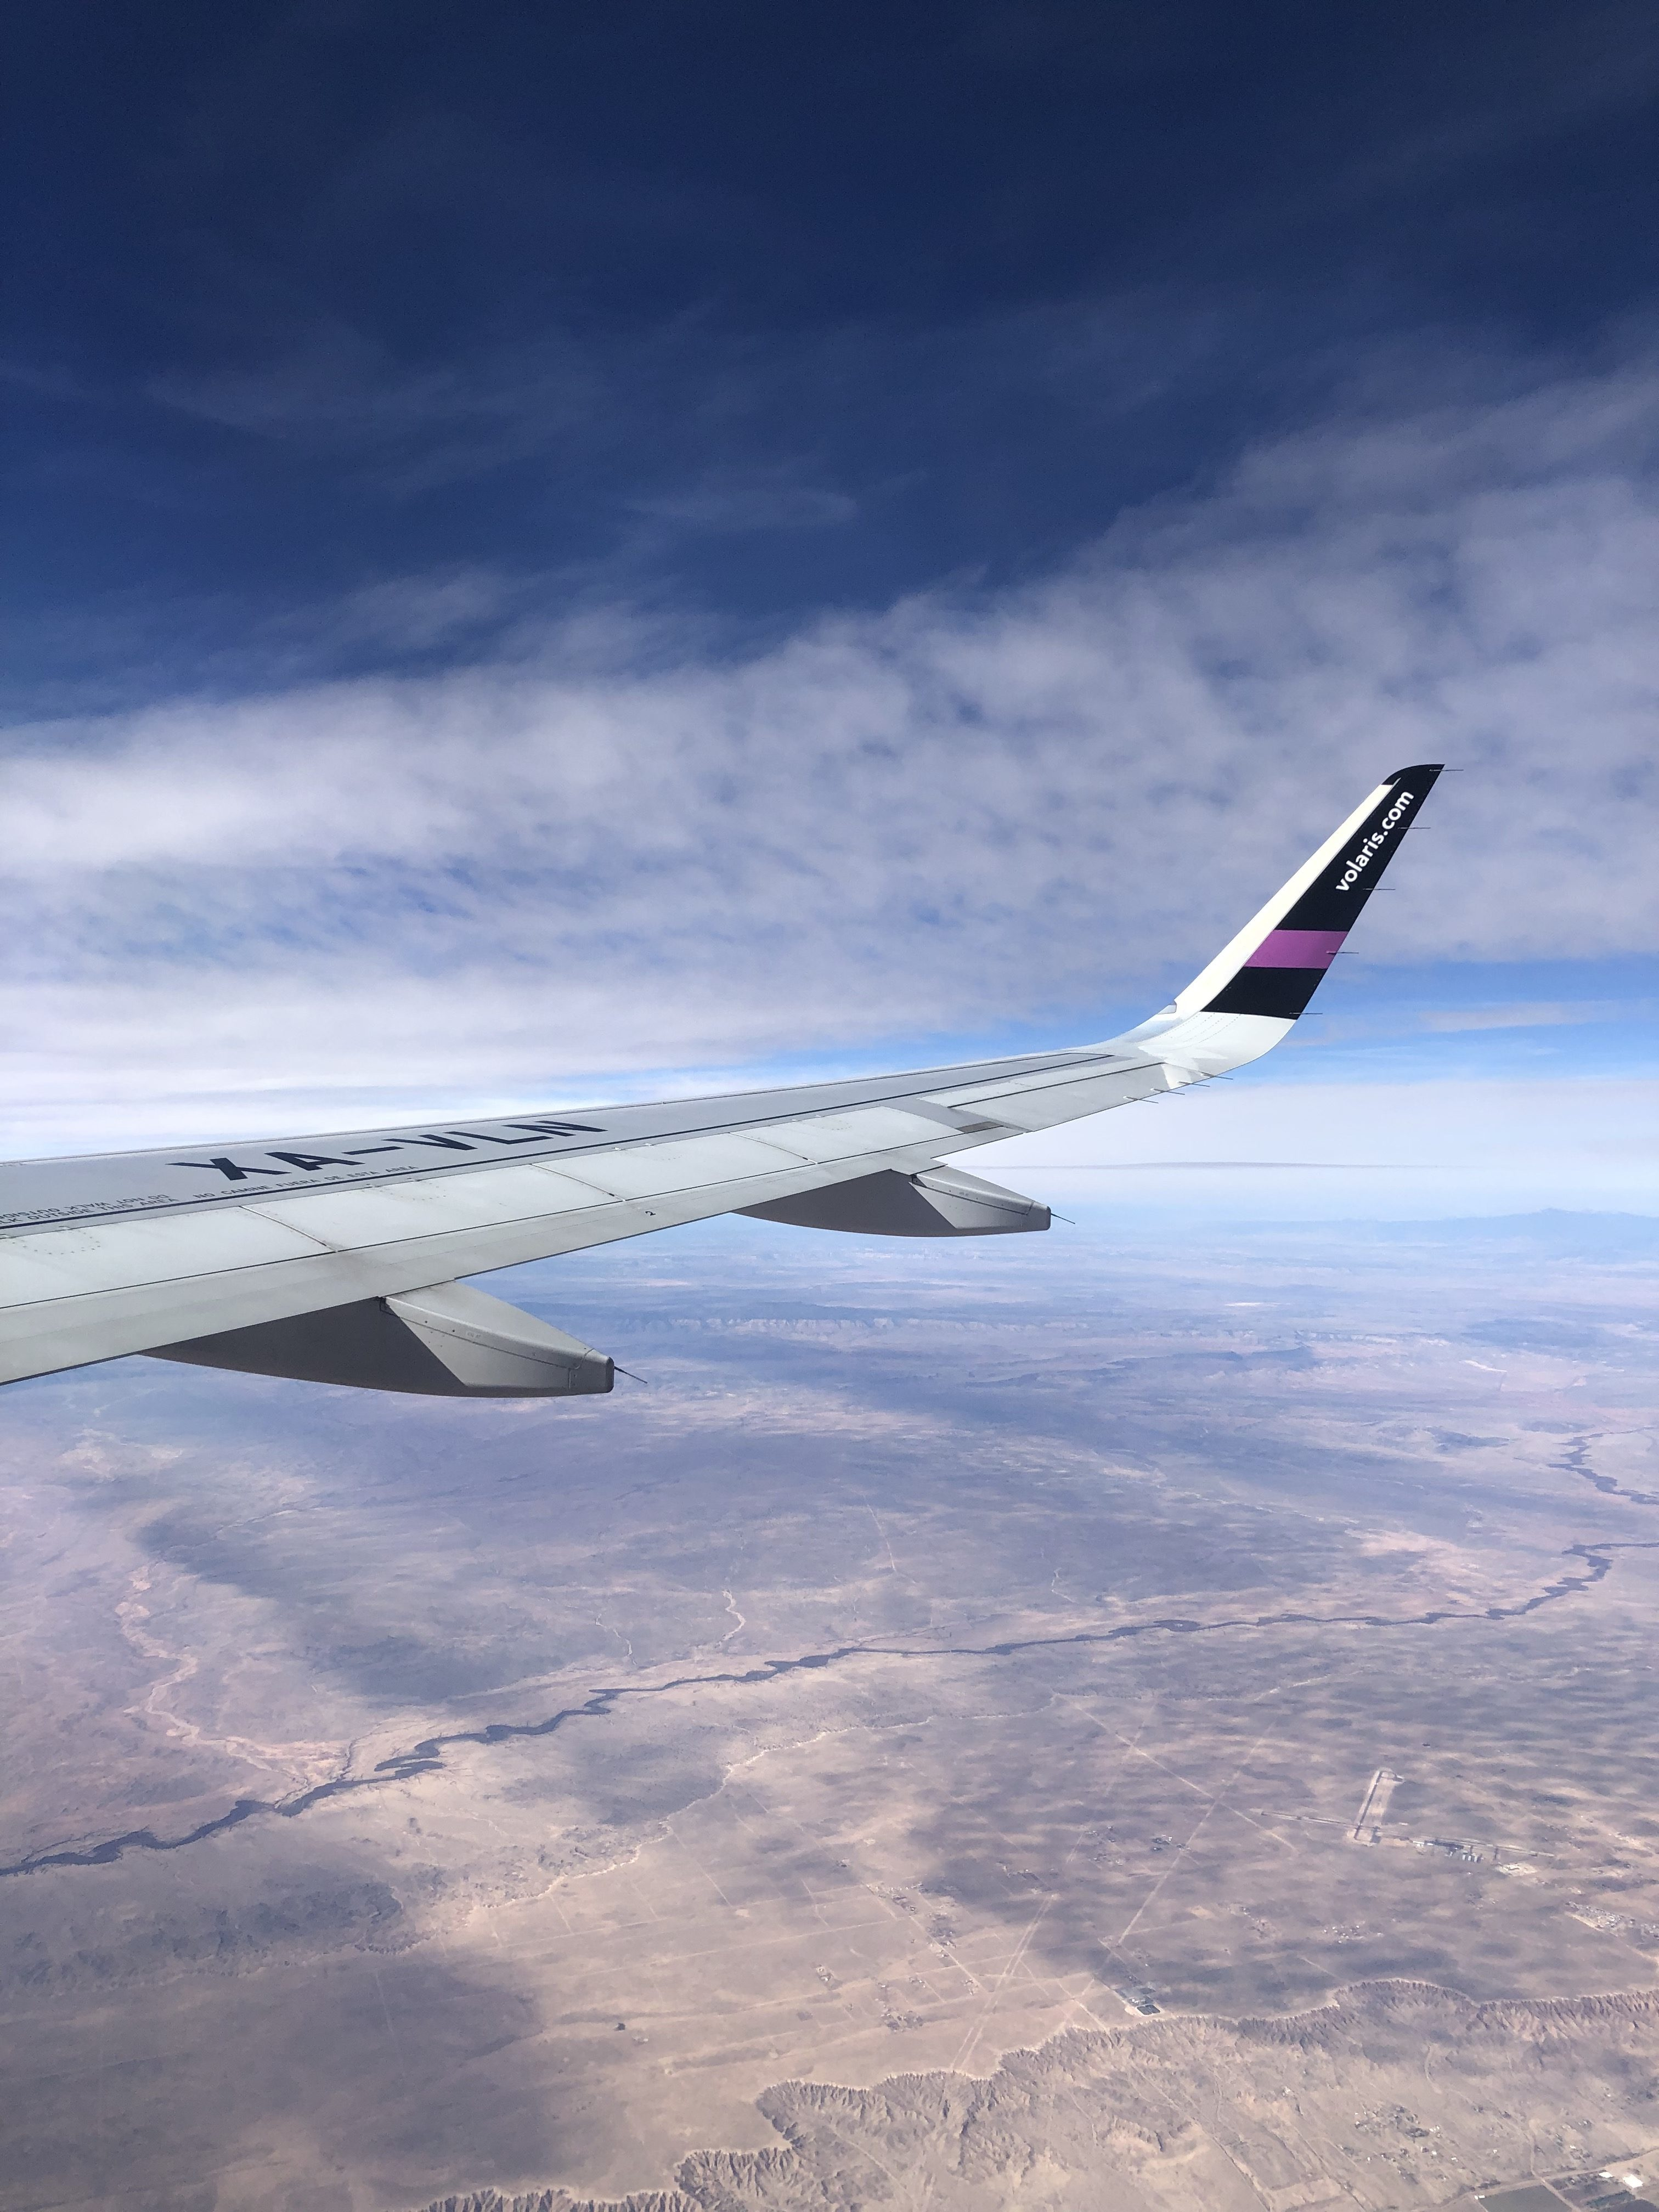 volaris inaugural flight Albuquerque to Guadalajara #travel #volaris #mexico